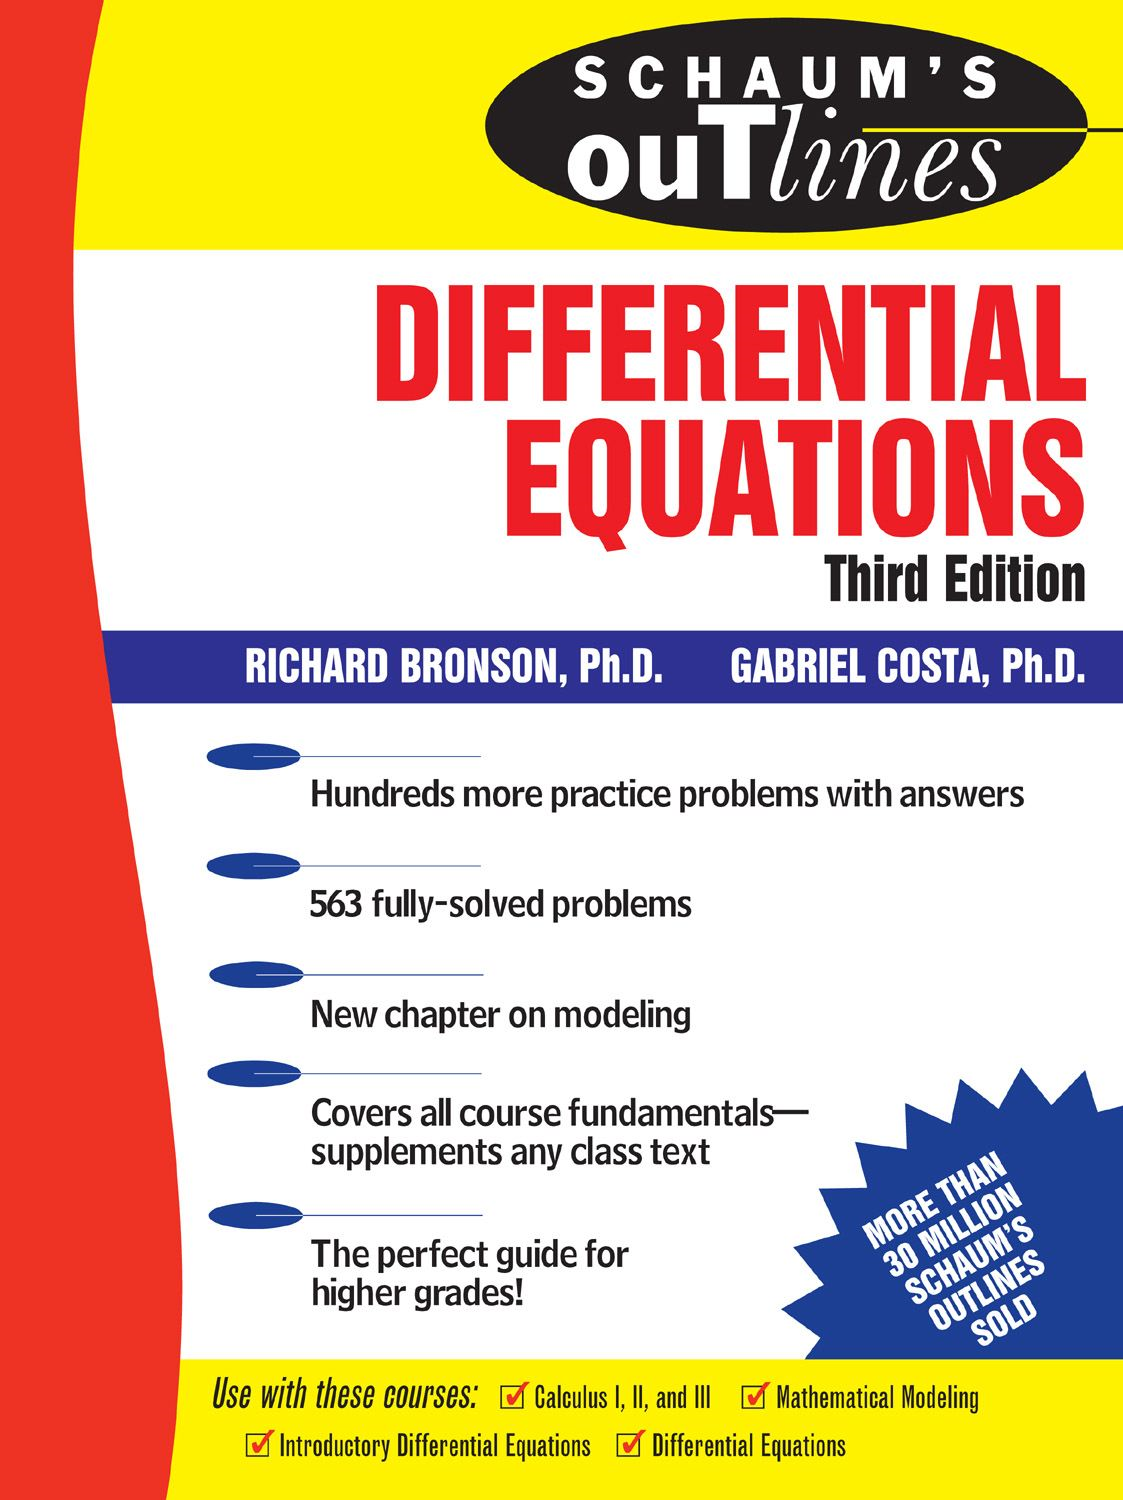 Schaum's Outline of Differential Equations 3rd edition By: Richard Bronson; Gabriel Costa